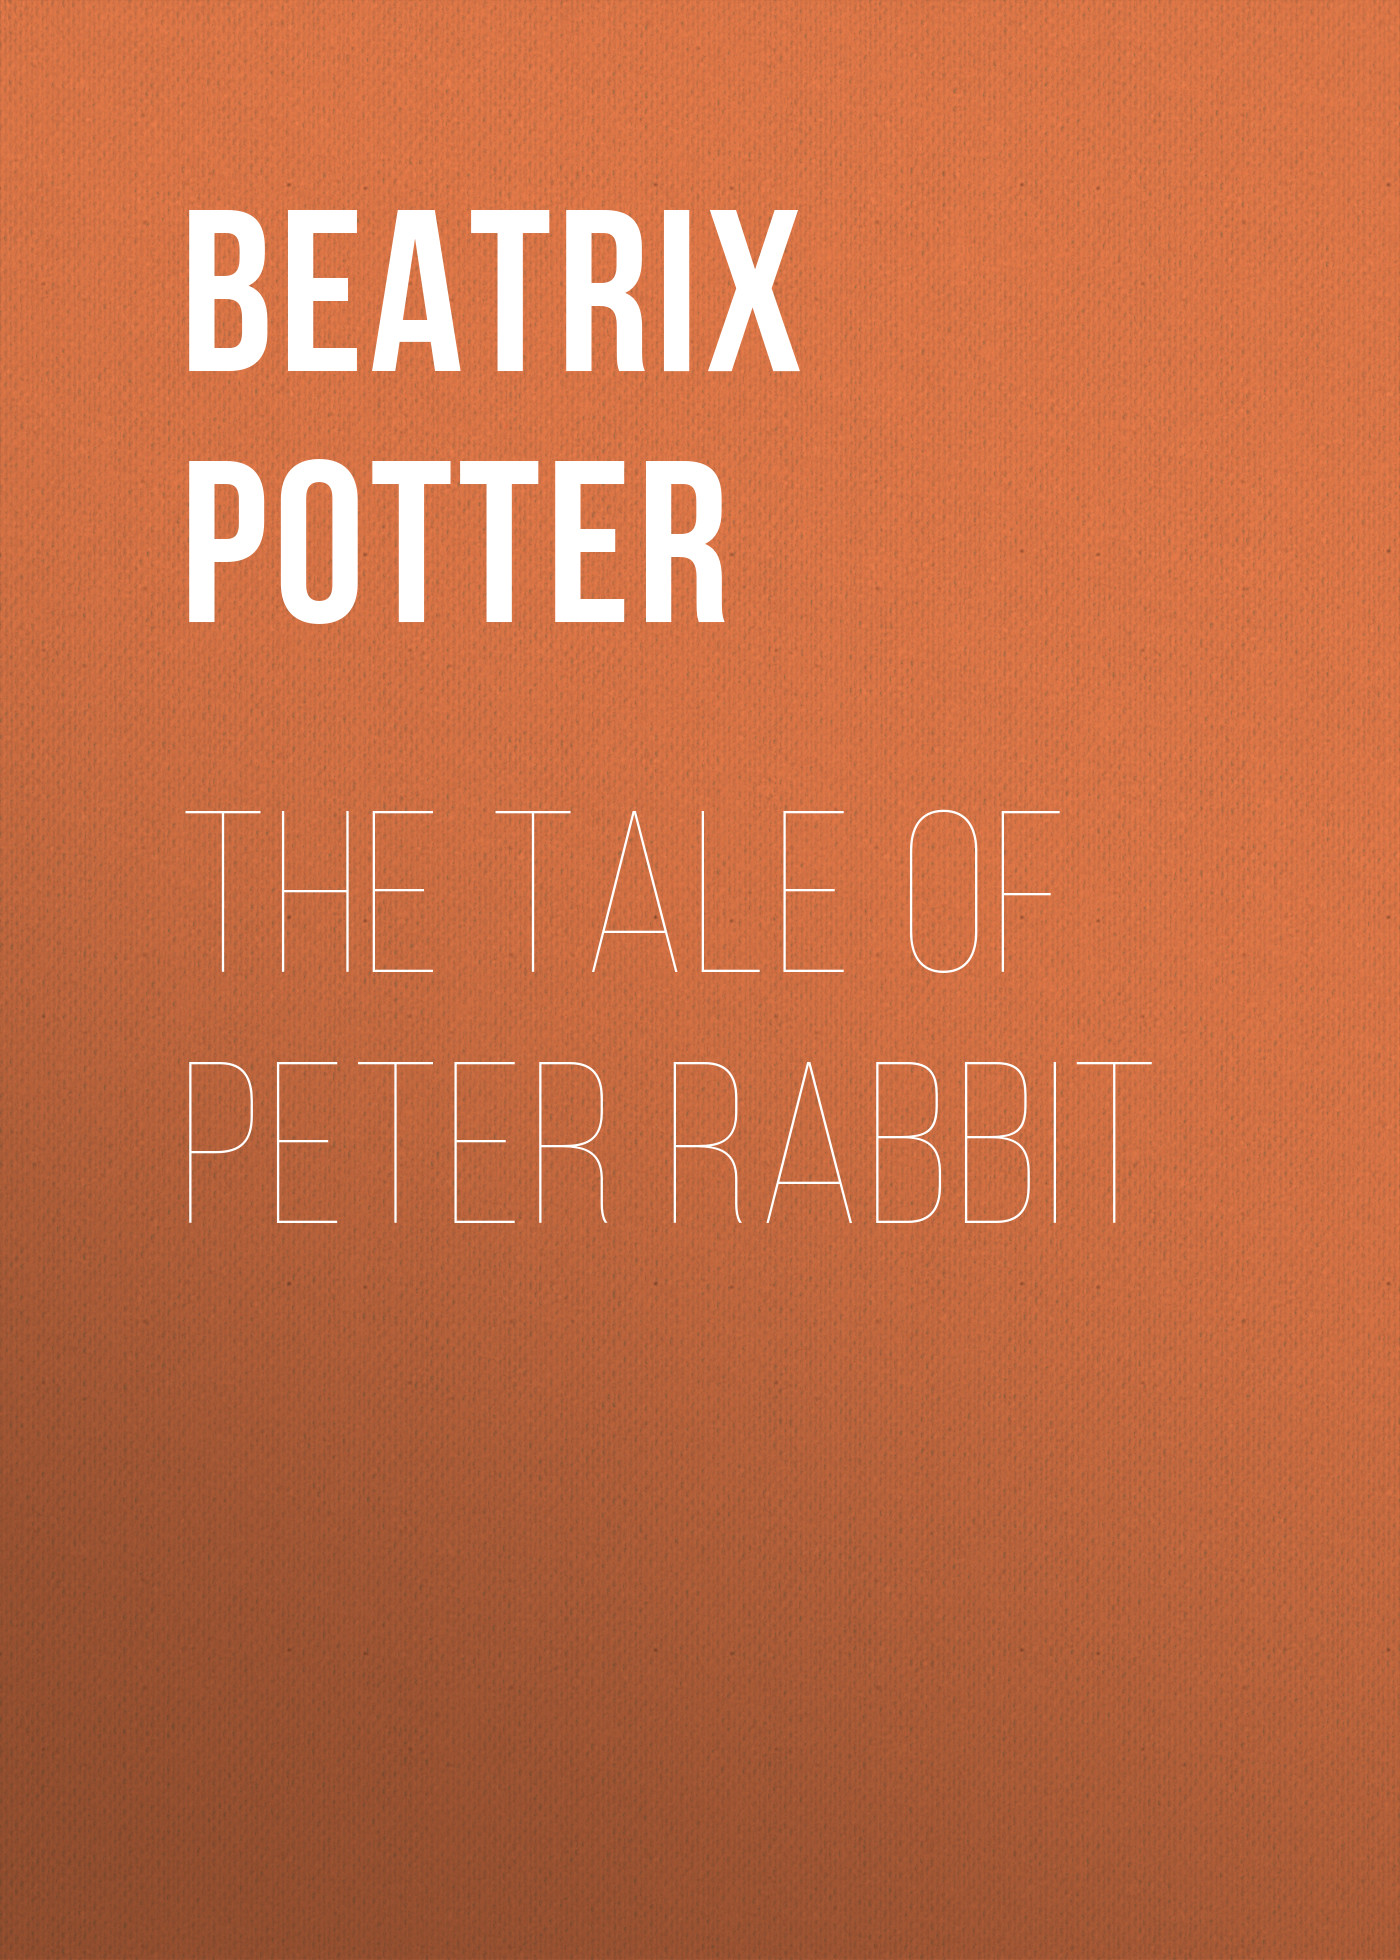 Беатрис Поттер The Tale of Peter Rabbit беатрис поттер the tale of samuel whiskers or the roly poly pudding page 2